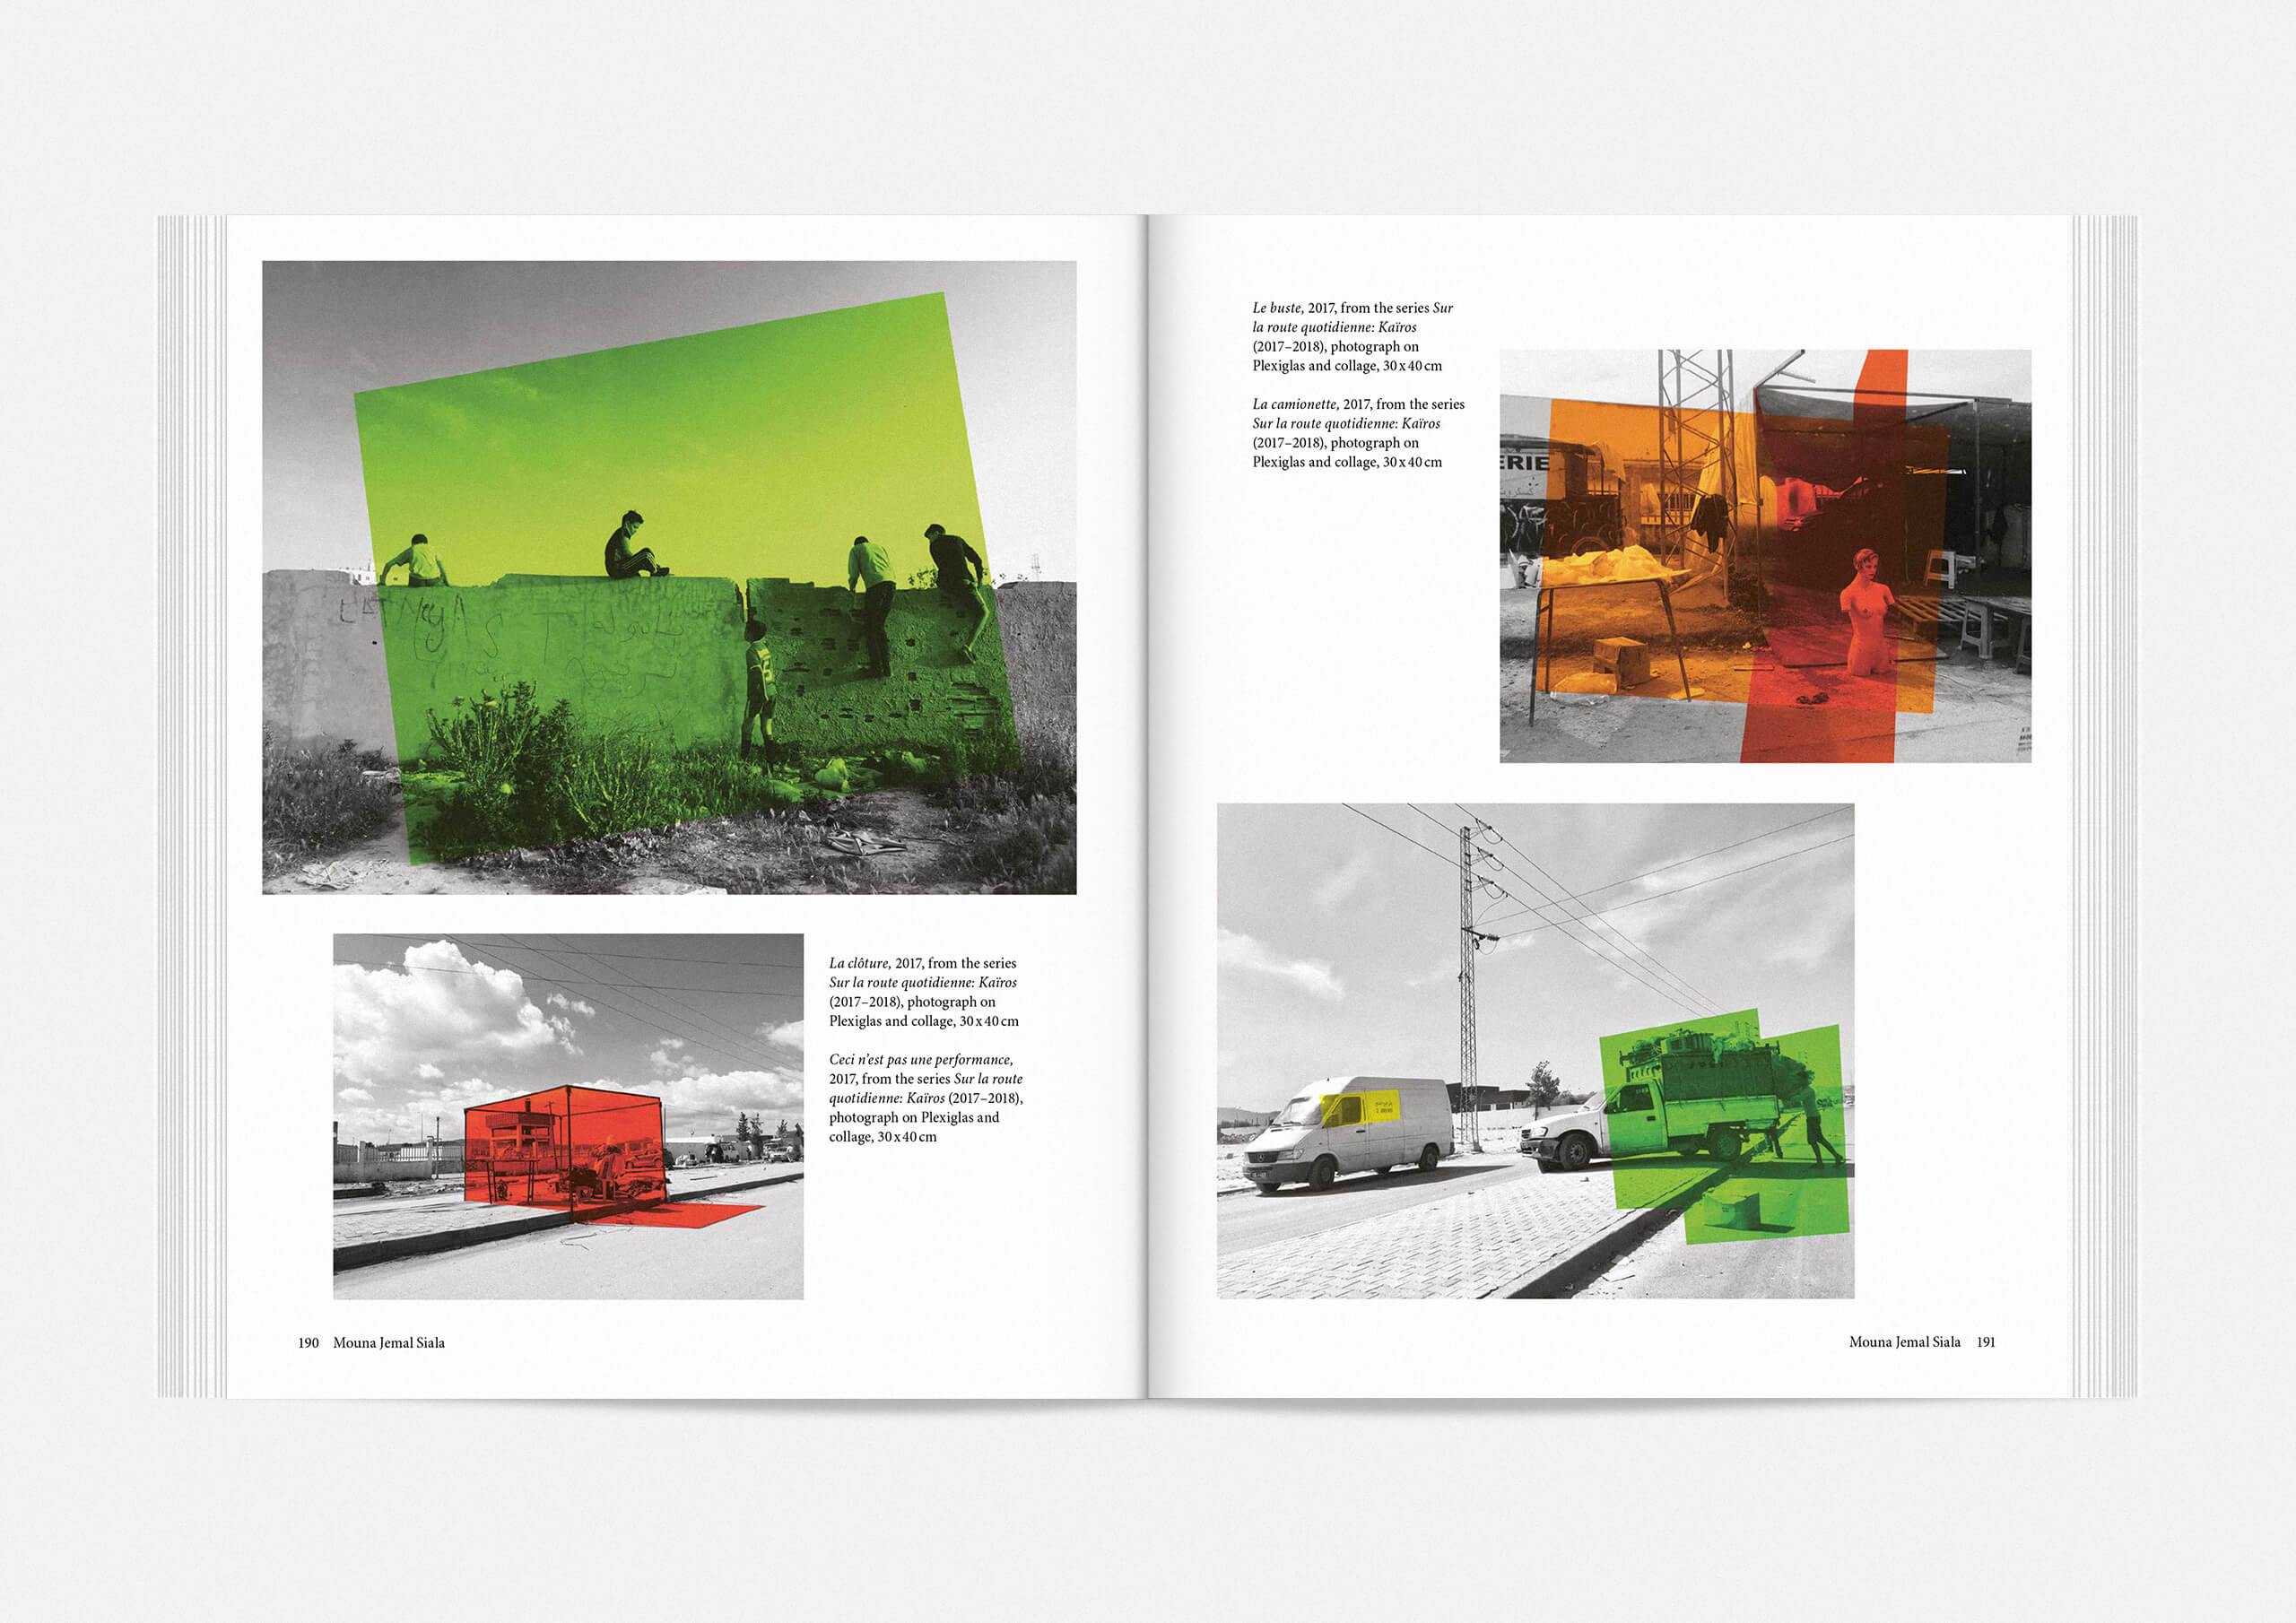 http://neuegestaltung.de/media/pages/clients/protocollum-issue-no-05/c6f4823c58-1597415142/protocollum-5-page-190191-ng.jpg